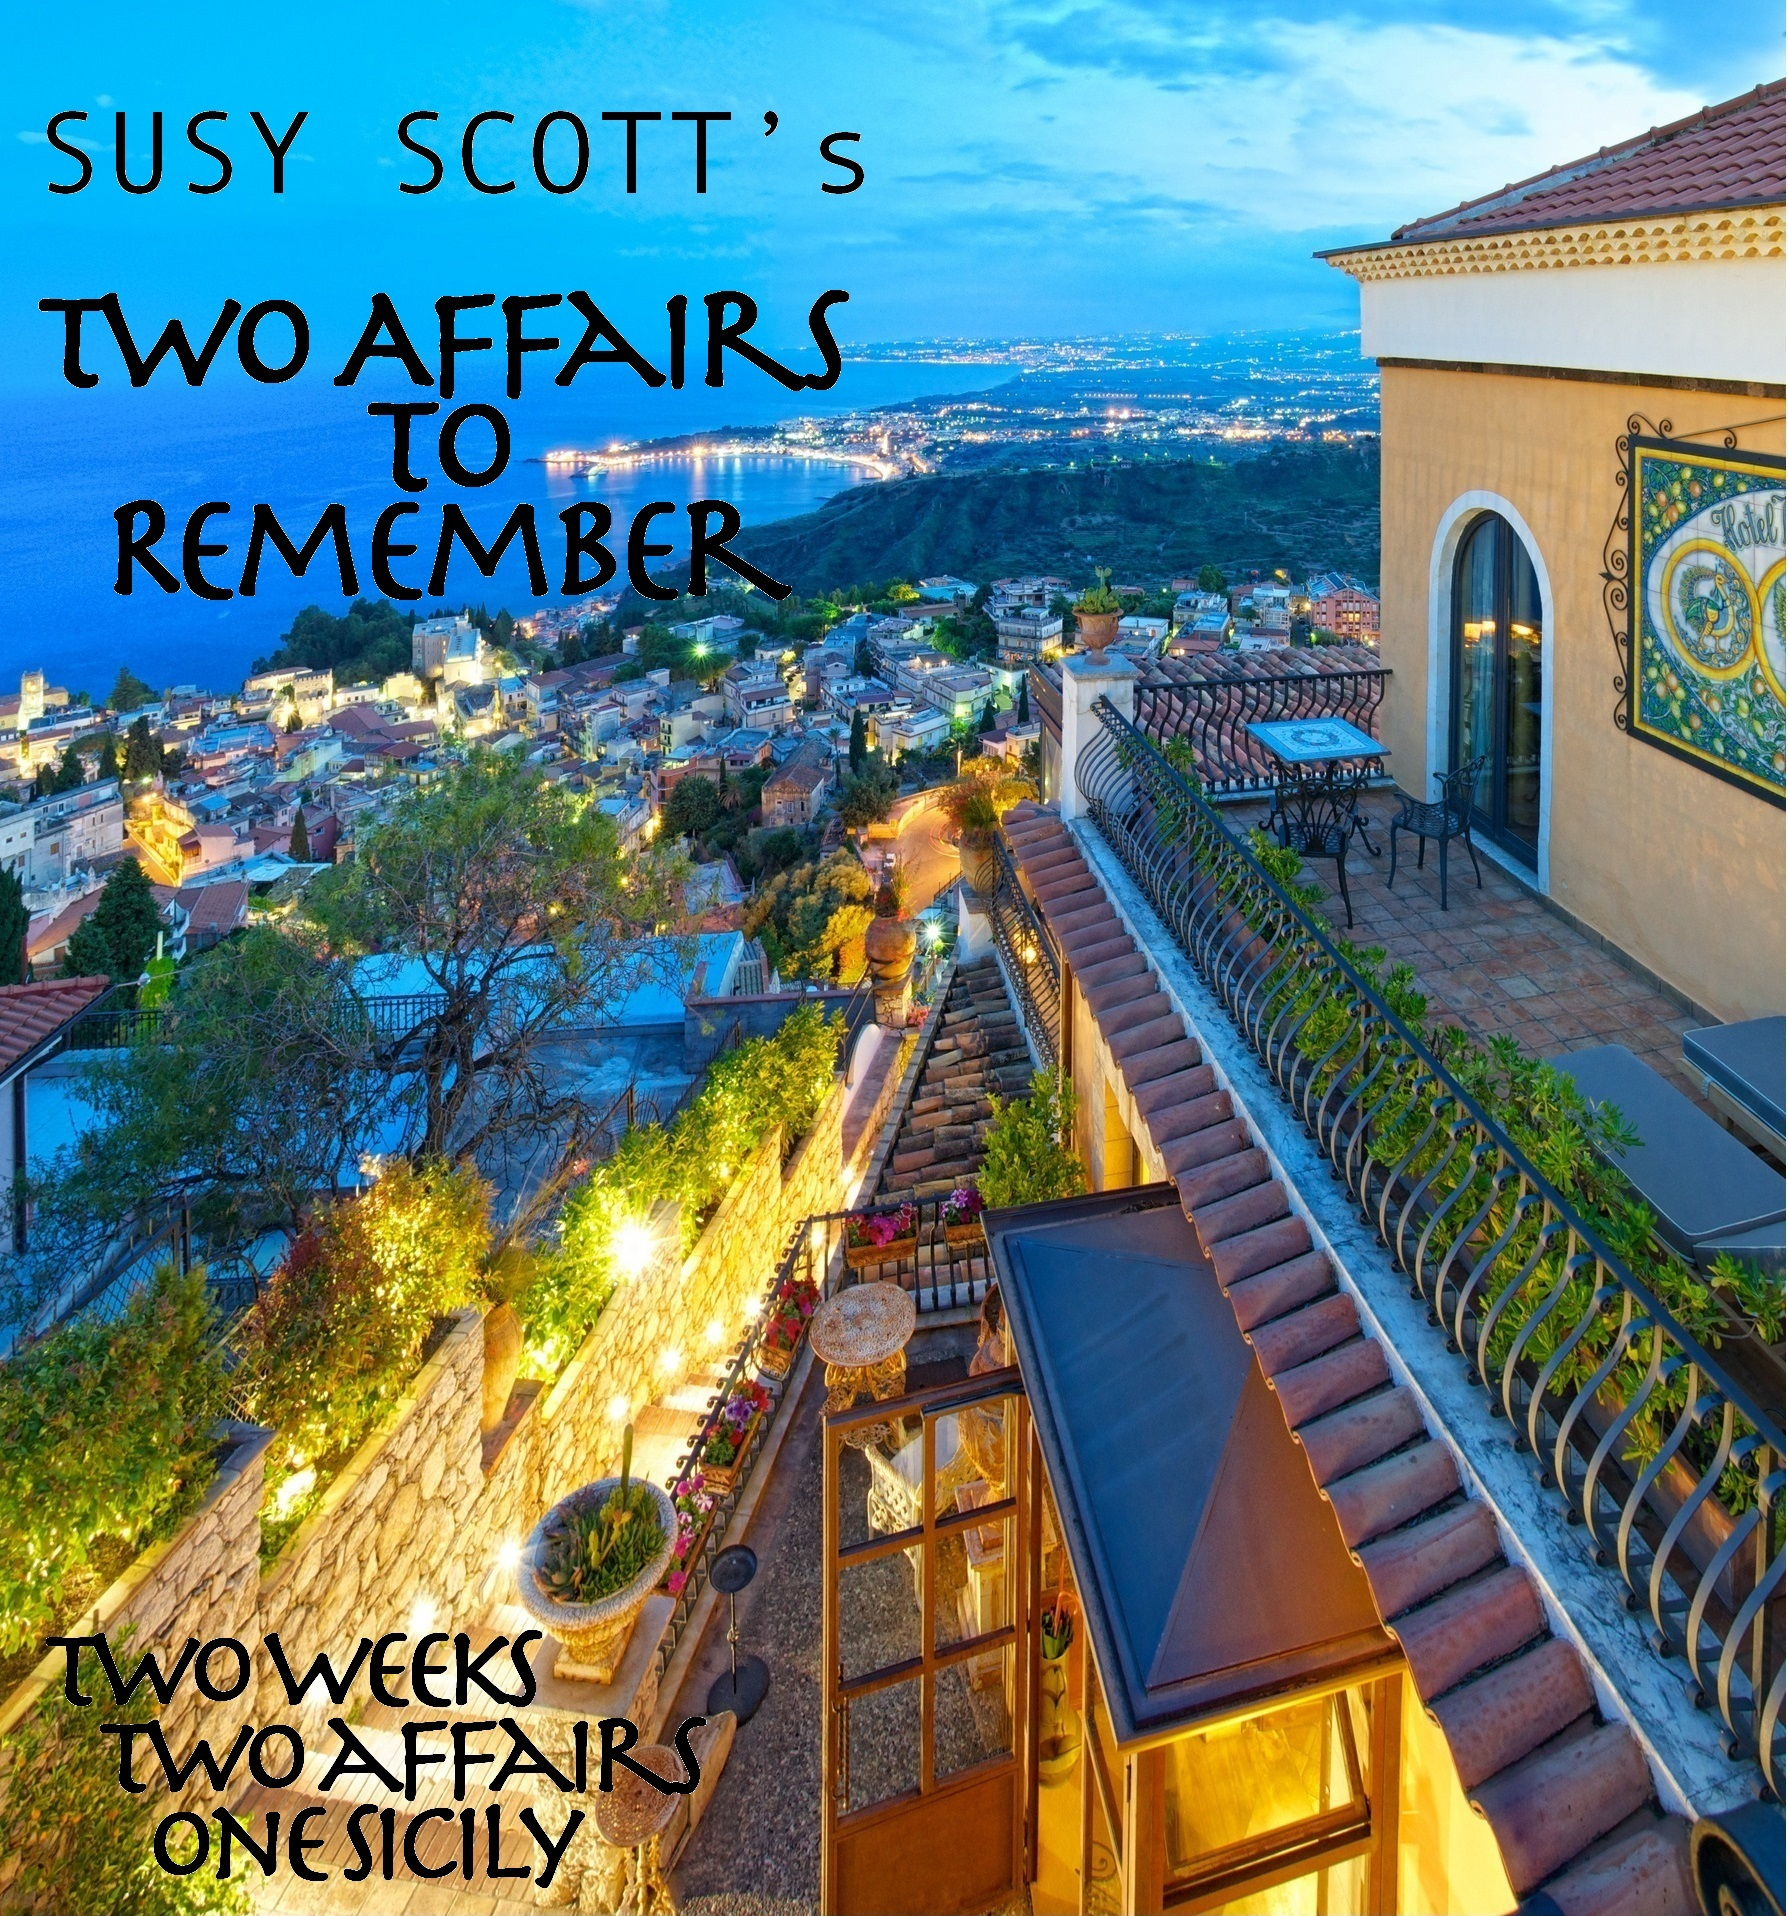 Two Affairs to Remember: Two weeks! Two Affairs! One Sicily!